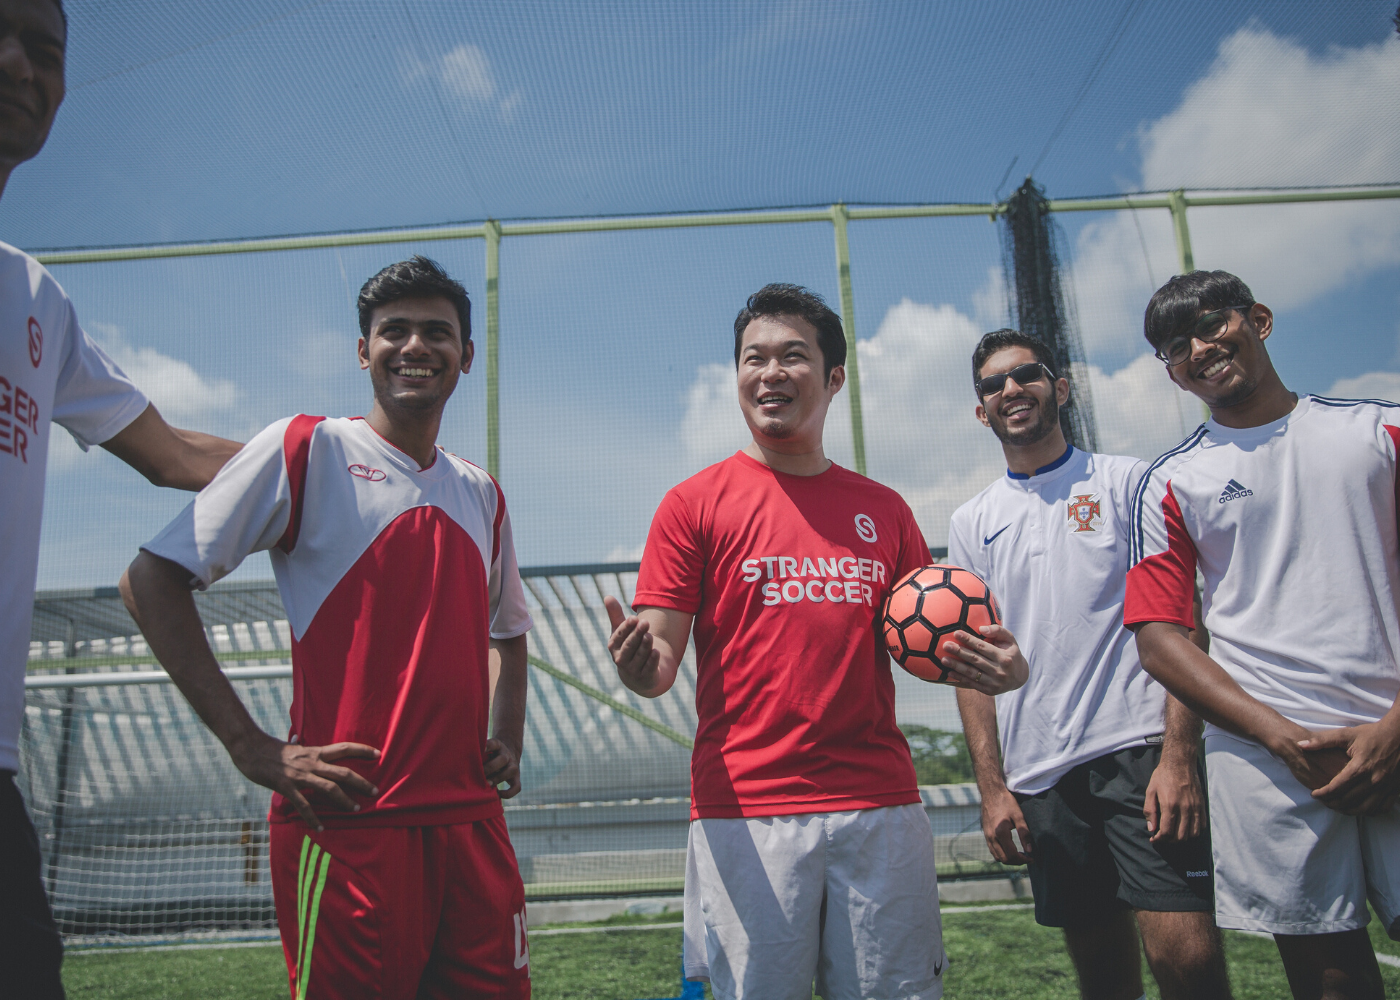 Grab your shoes! Stranger Soccer offers you the easiest way to join a football game